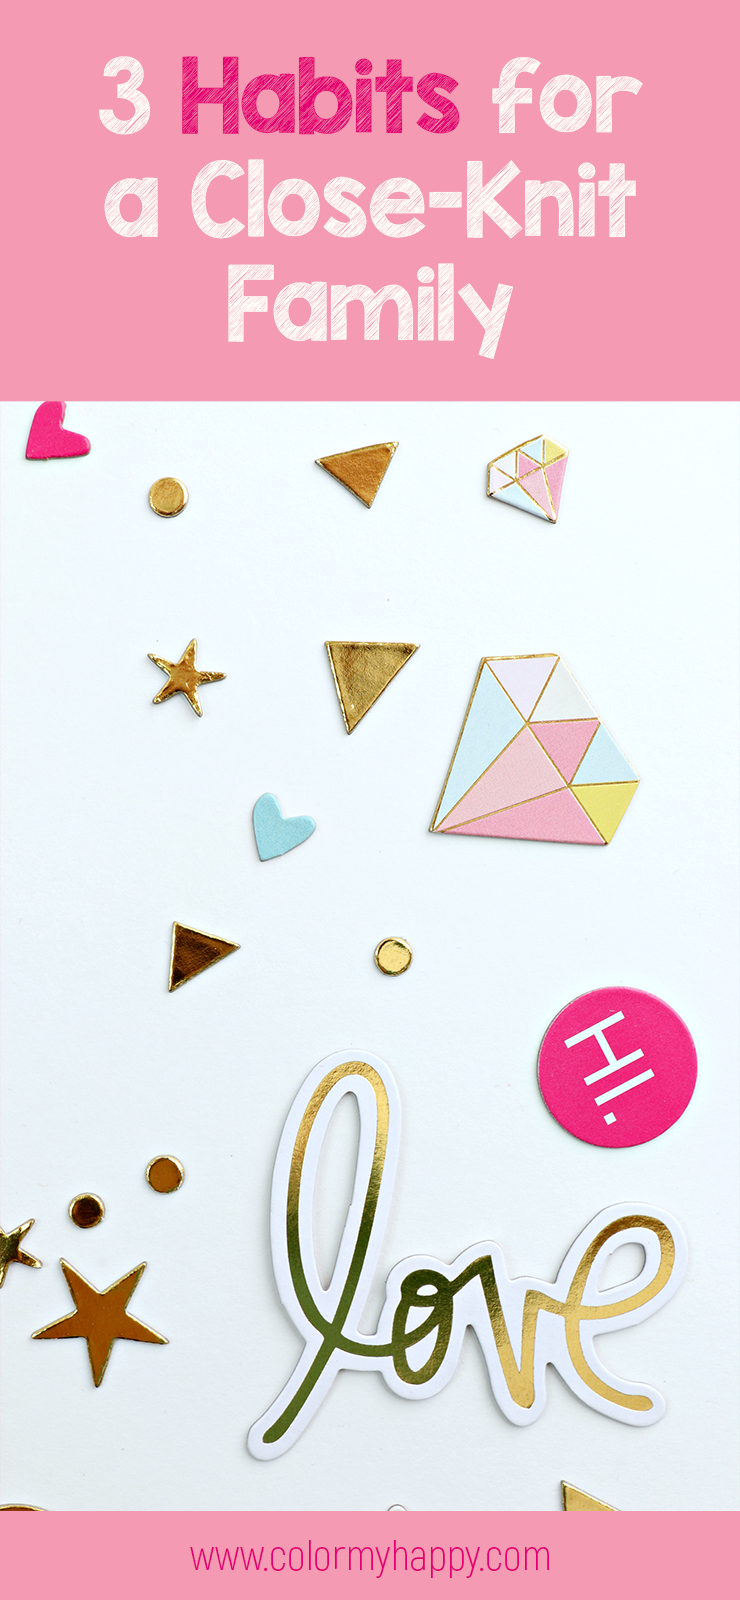 "A bunch of shaped confetti: diamonds, triangles, hearts, stars, the word ""love"", the word ""hi"" in shades of pink, gold, white, yellow, and light blue. The words ""3 Habits for a Close-Knit Family"" from colormyhappy.com"